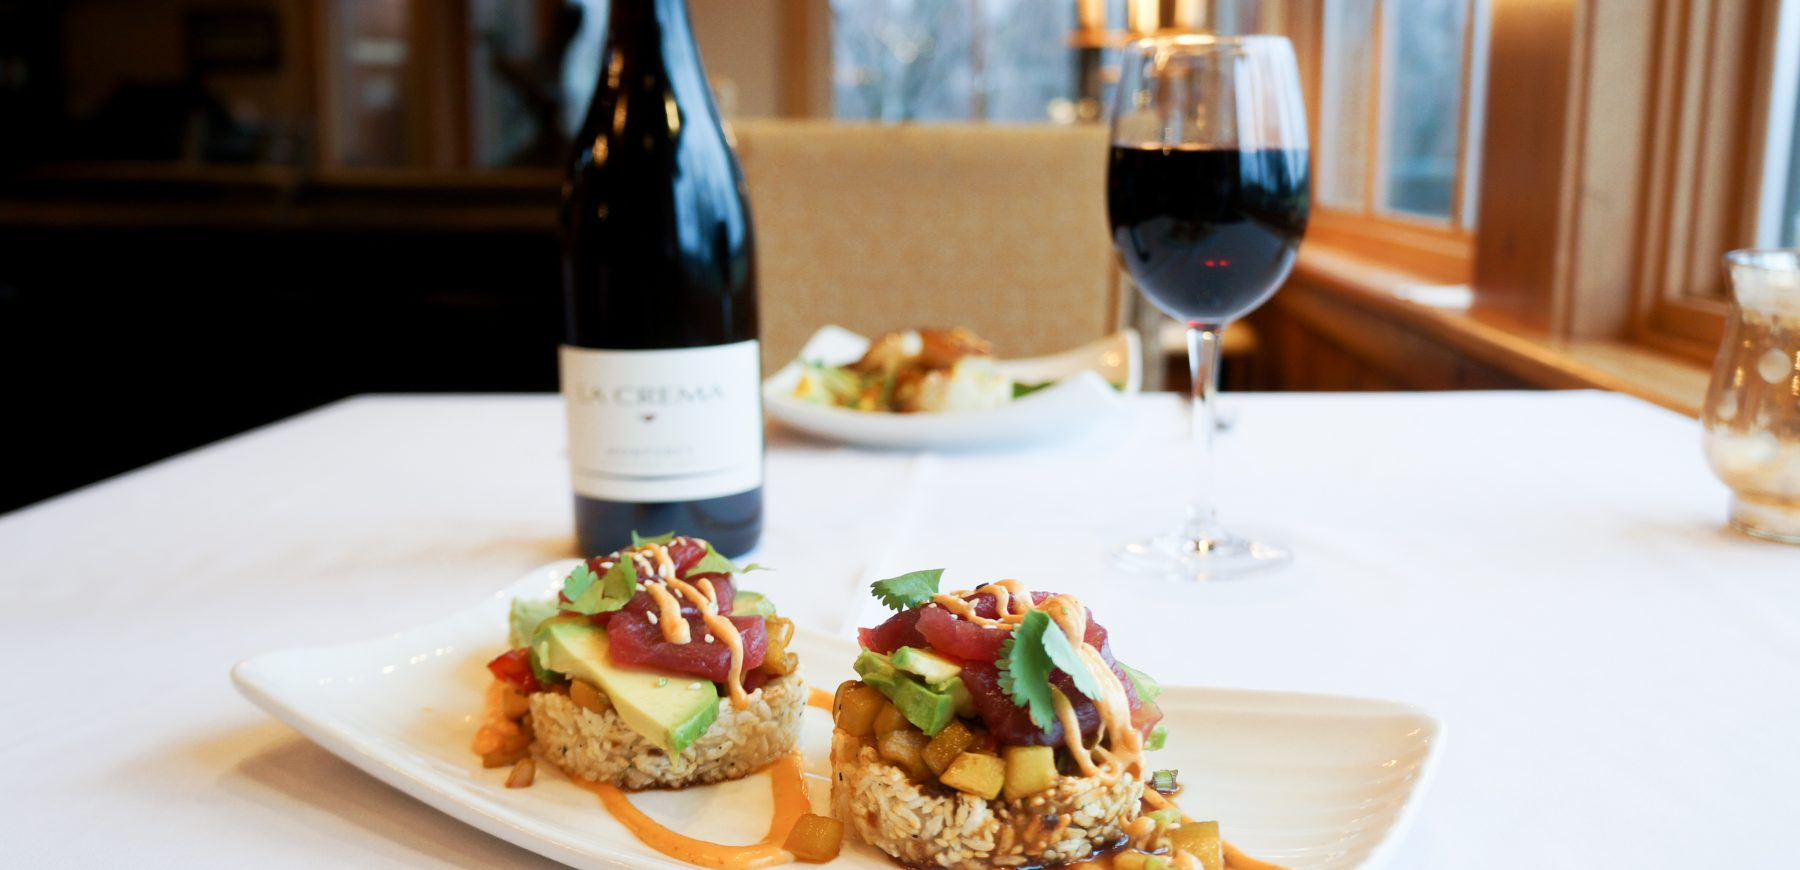 grilled sushi stacks with glass and bottle of red wine